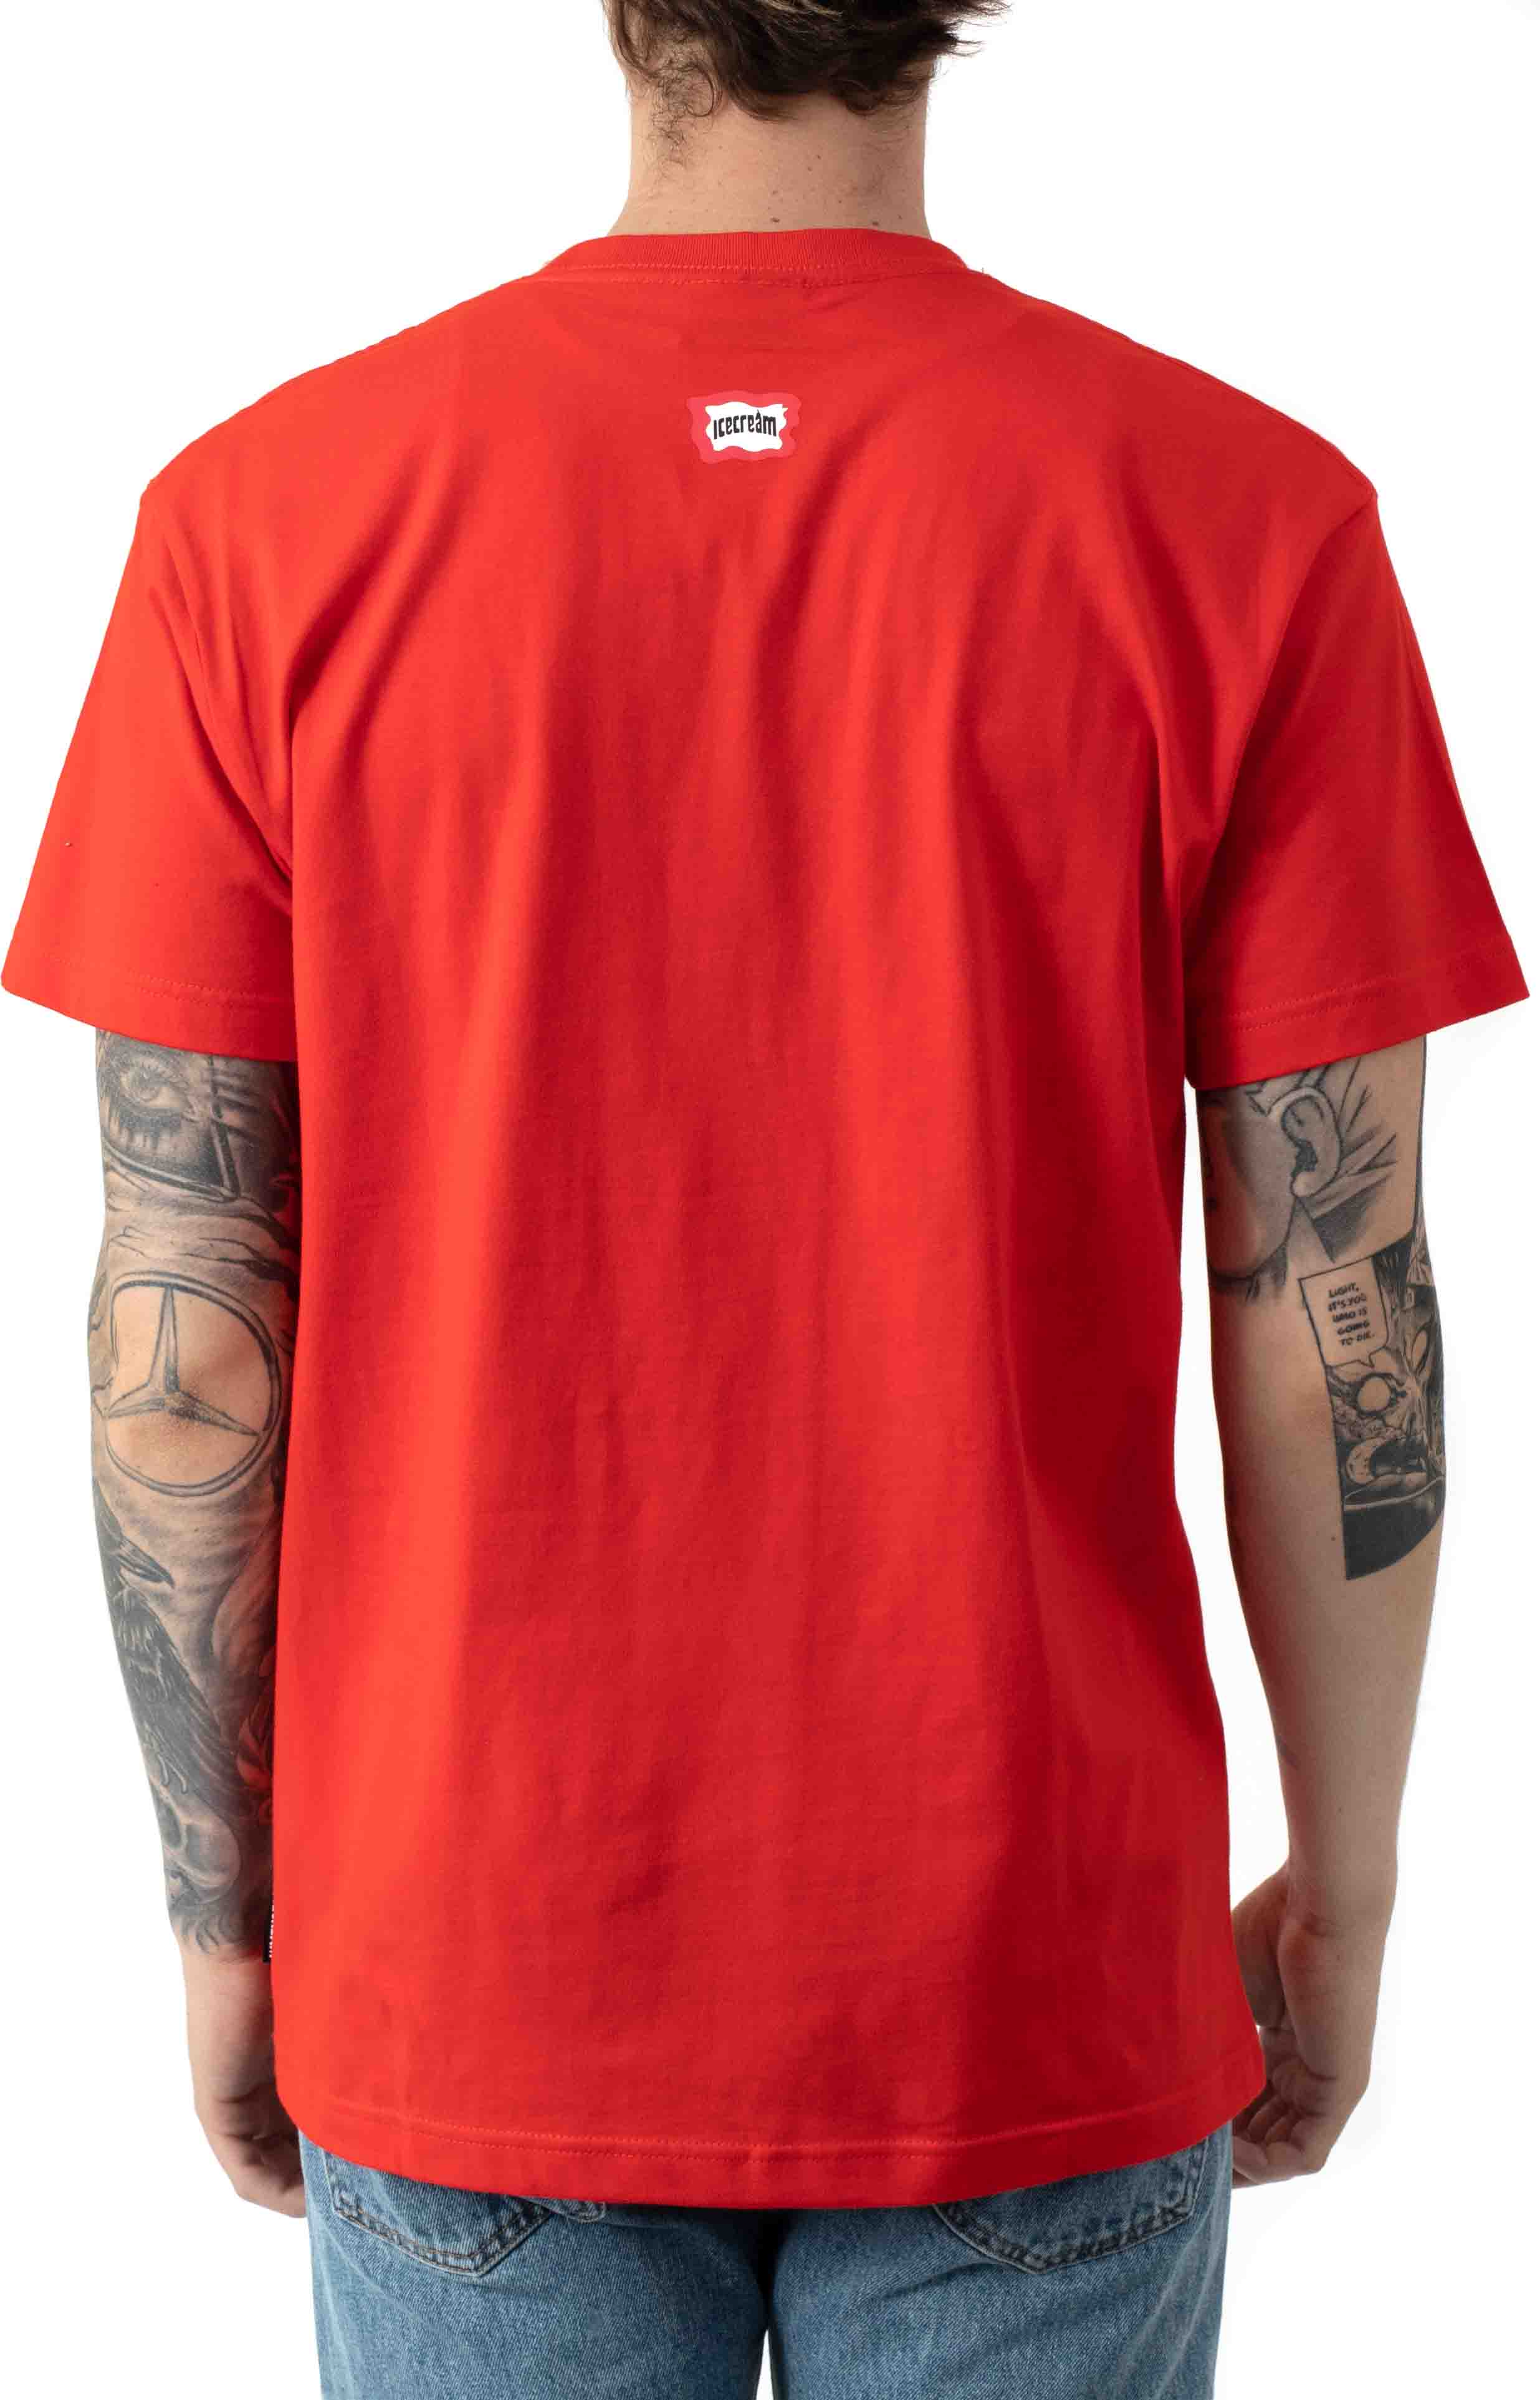 Fossil Fuel T-Shirt - Fiery Red 3